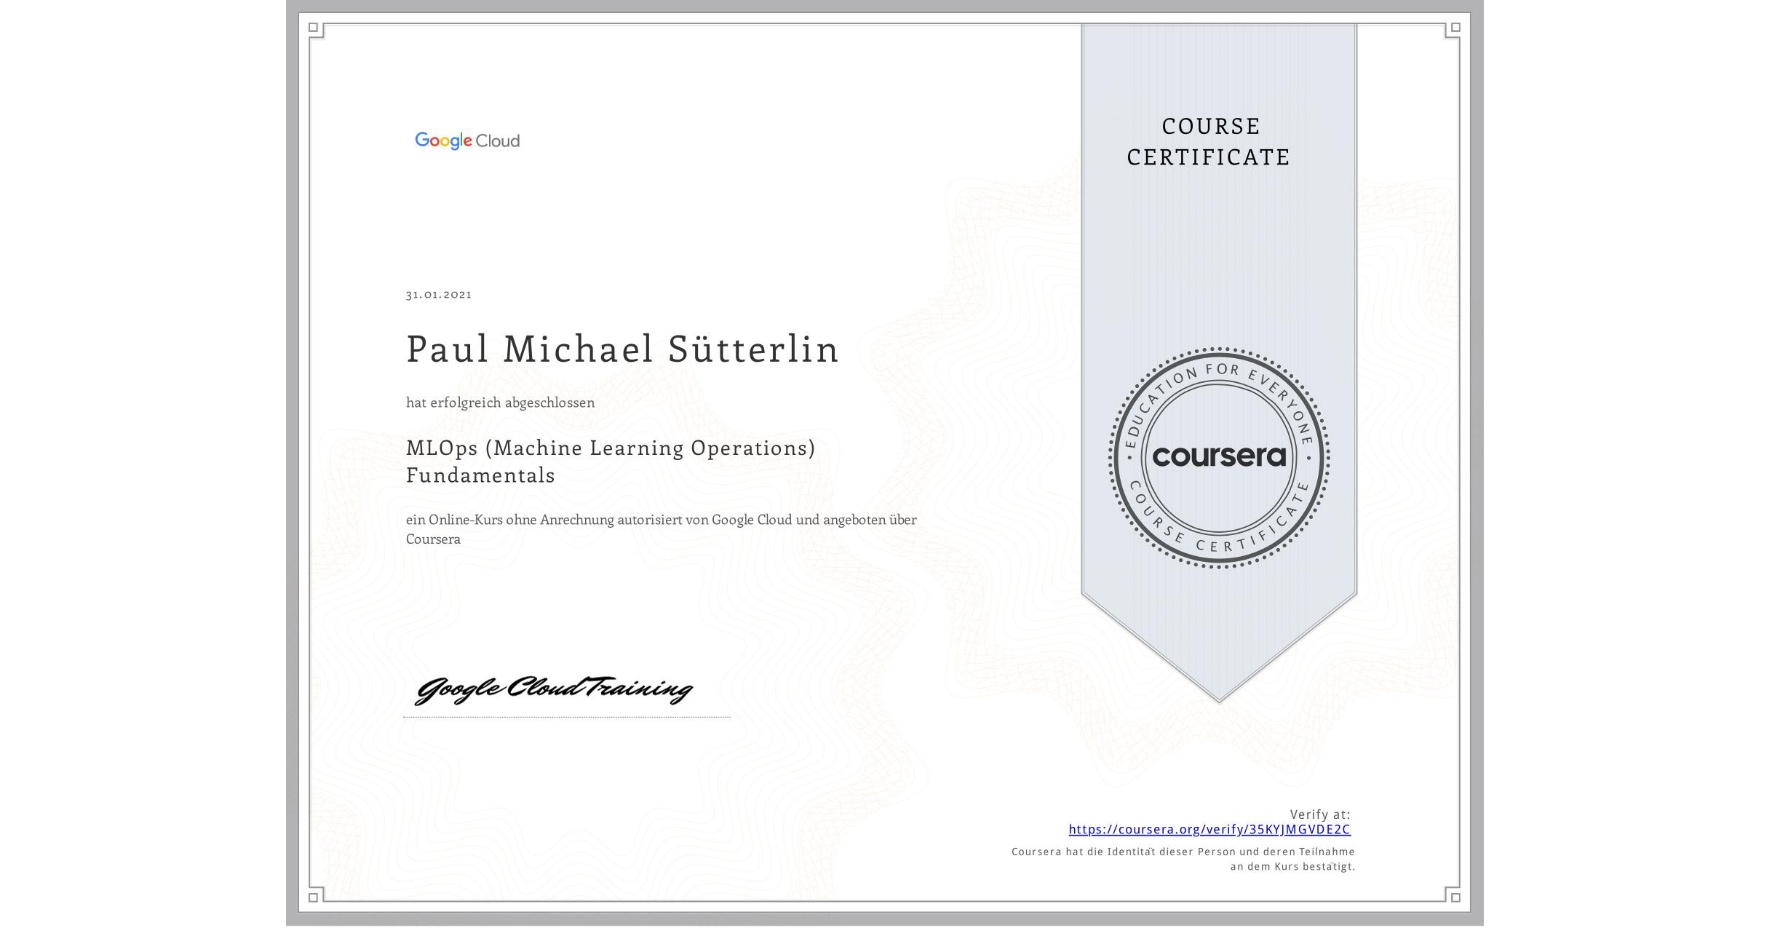 View certificate for Paul Michael Sütterlin, MLOps (Machine Learning Operations) Fundamentals, an online non-credit course authorized by Google Cloud and offered through Coursera